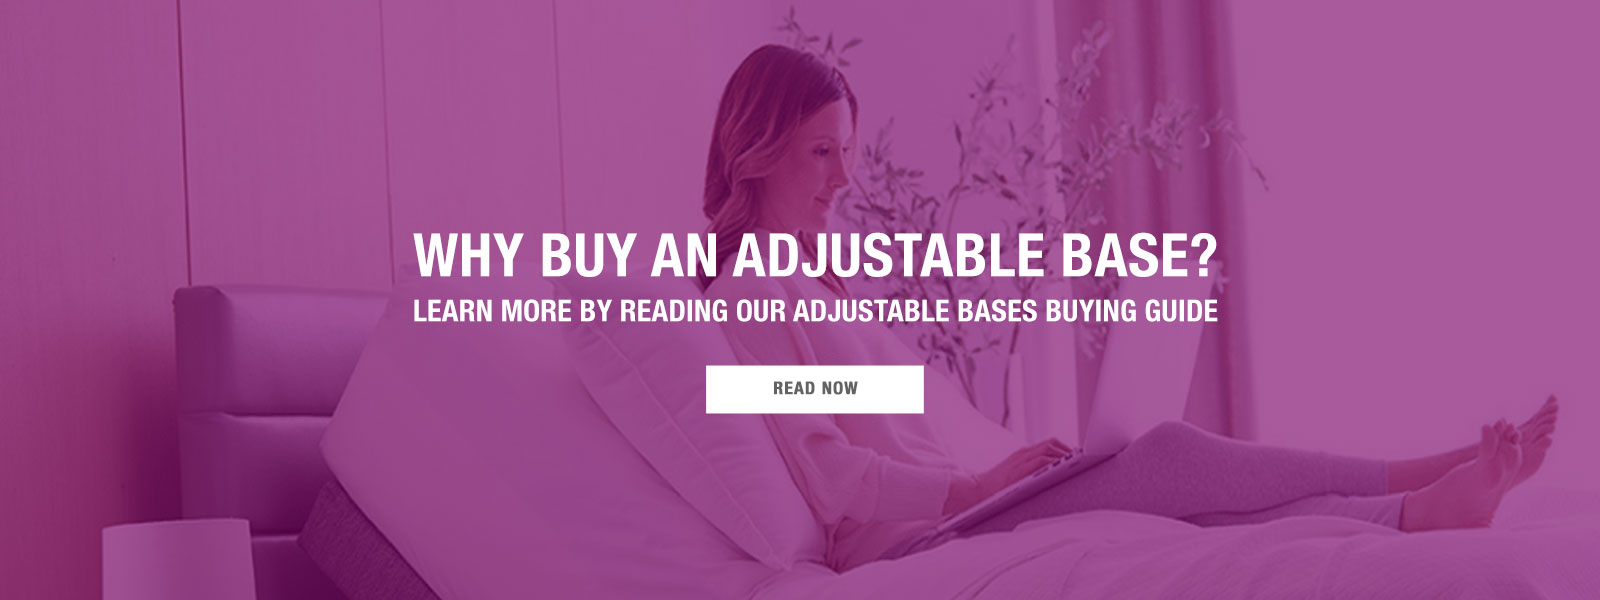 Adjustable Base Buying Guide